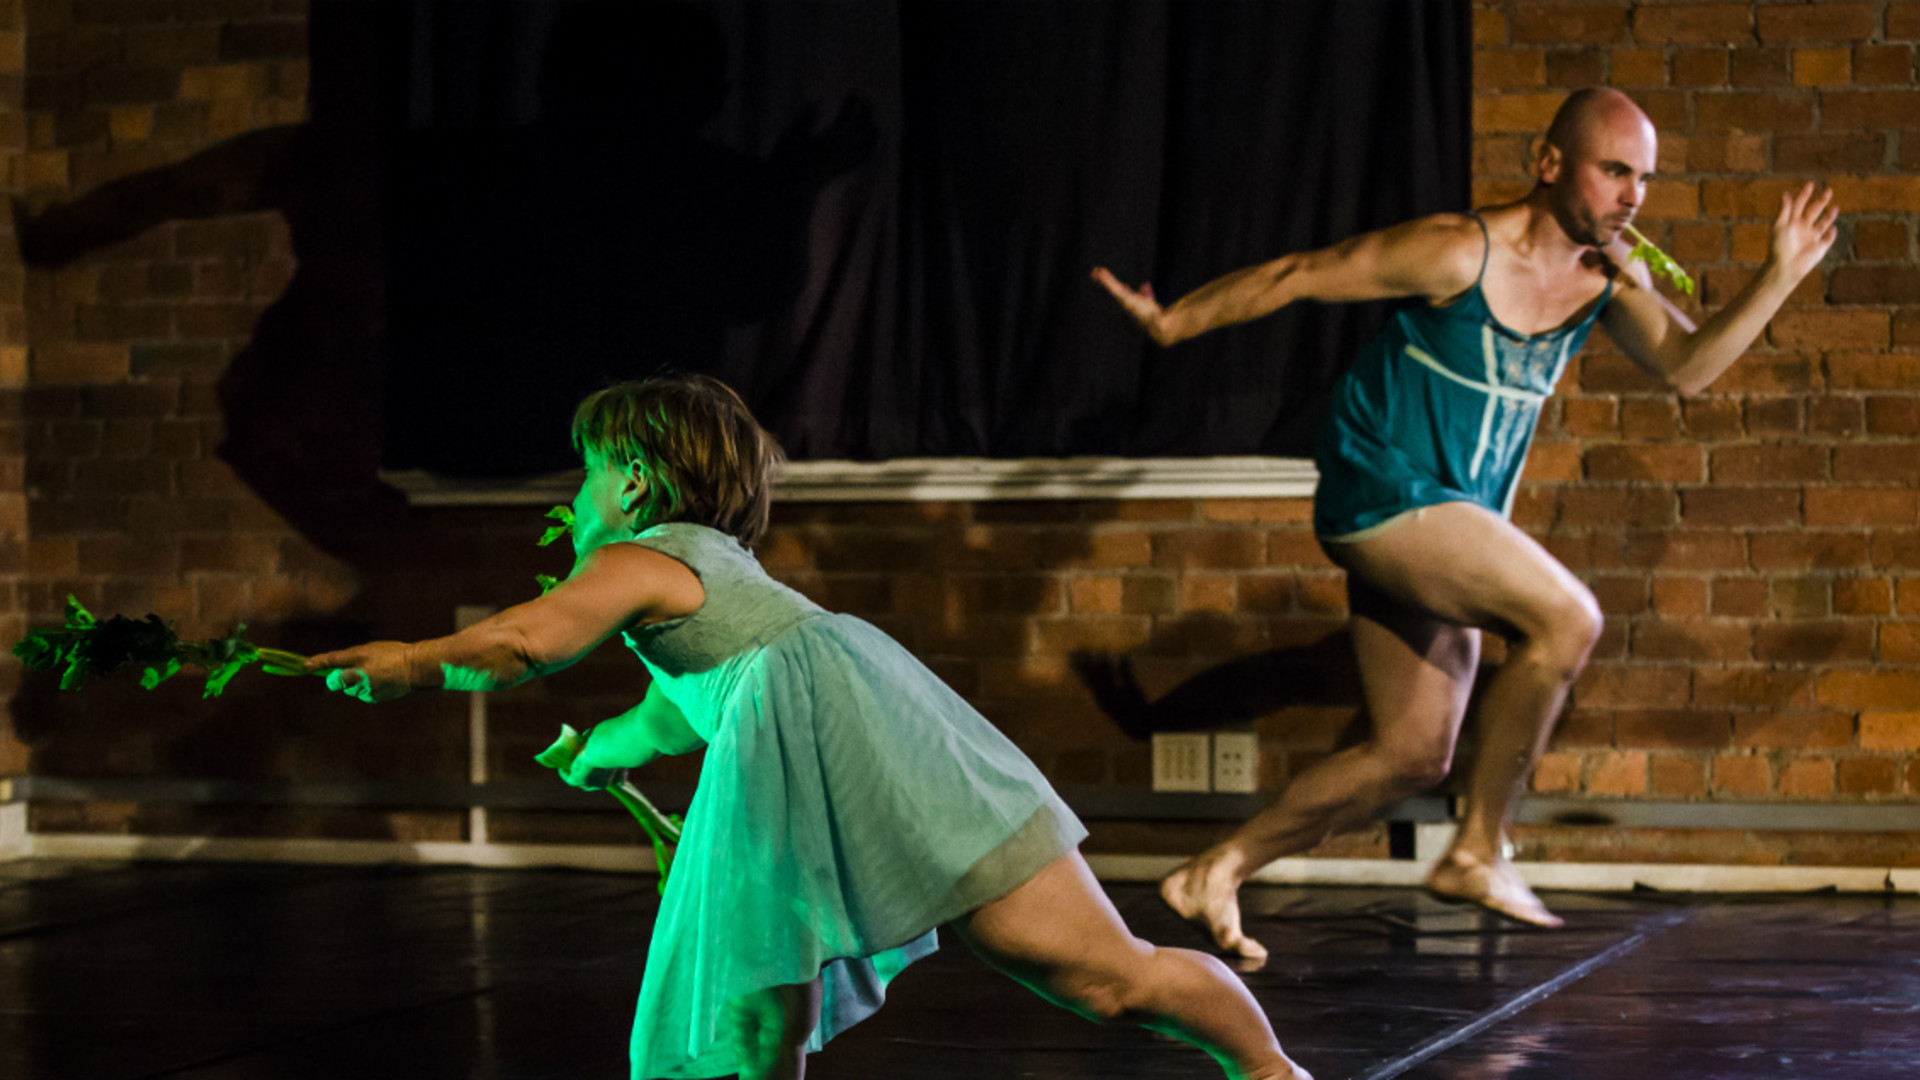 Two dancers run past each other in opposite directions, eating celery.